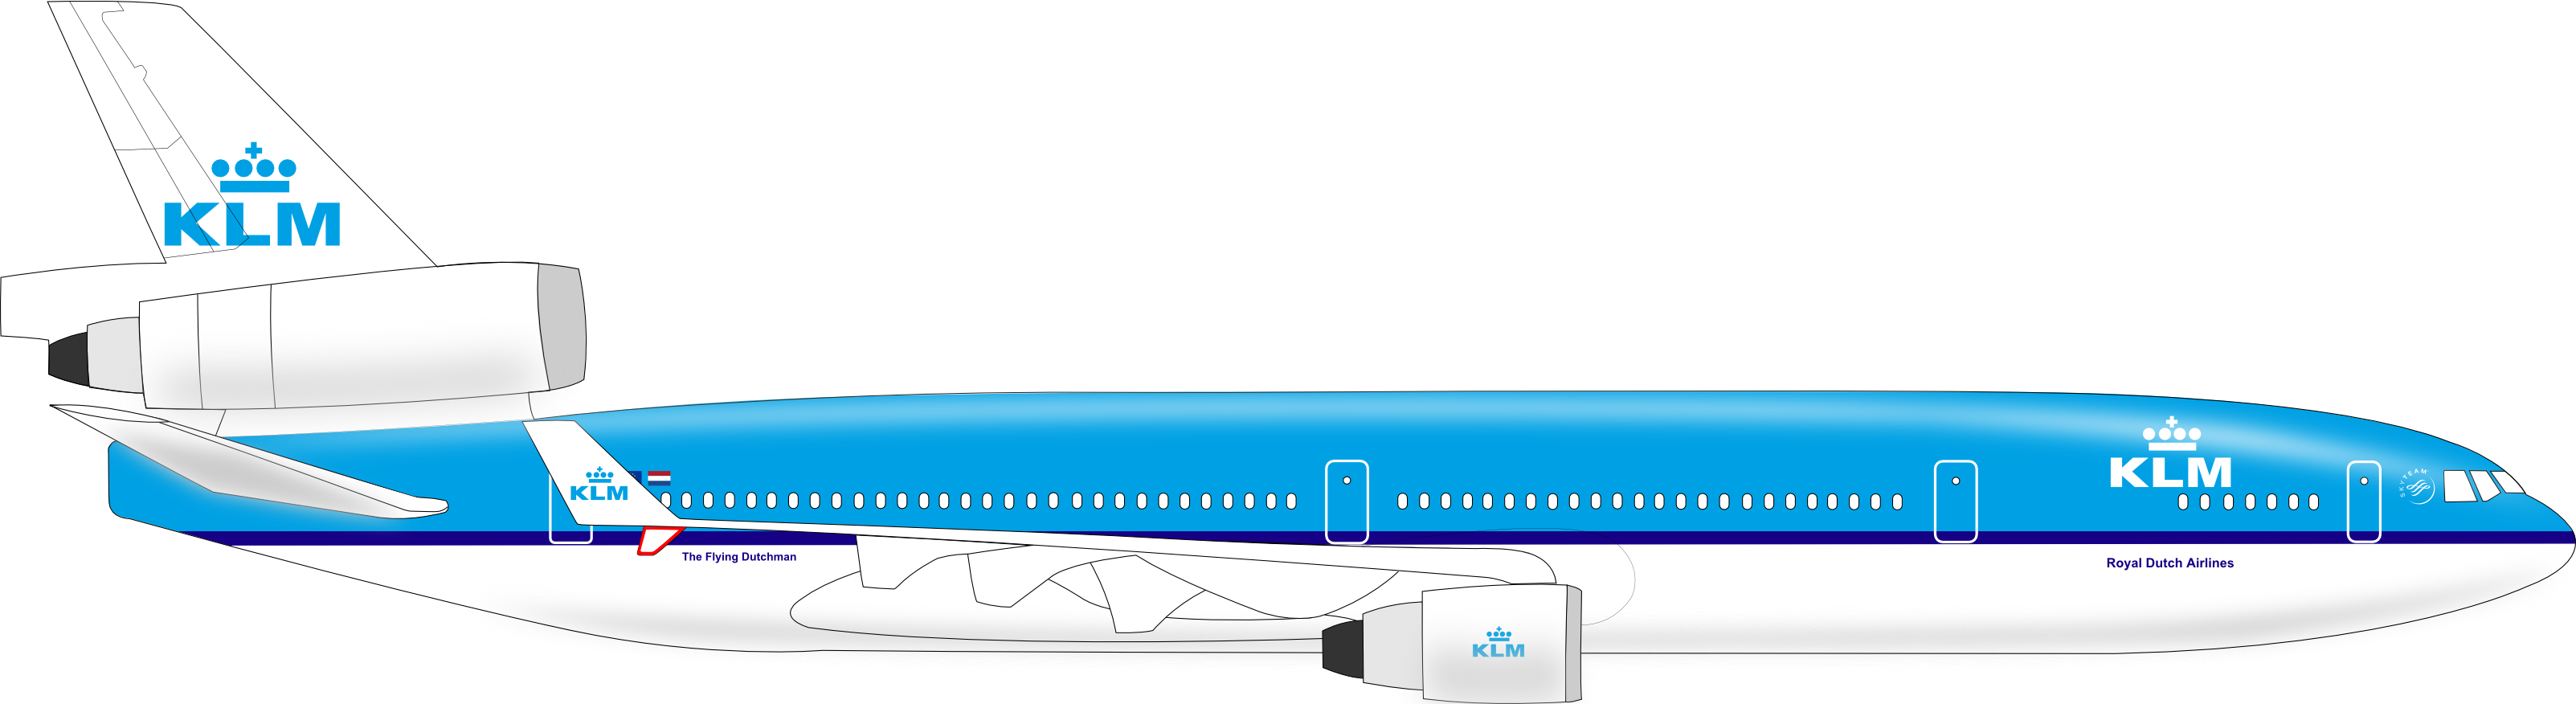 fileklm mcdonnell douglas md11png wikimedia commons